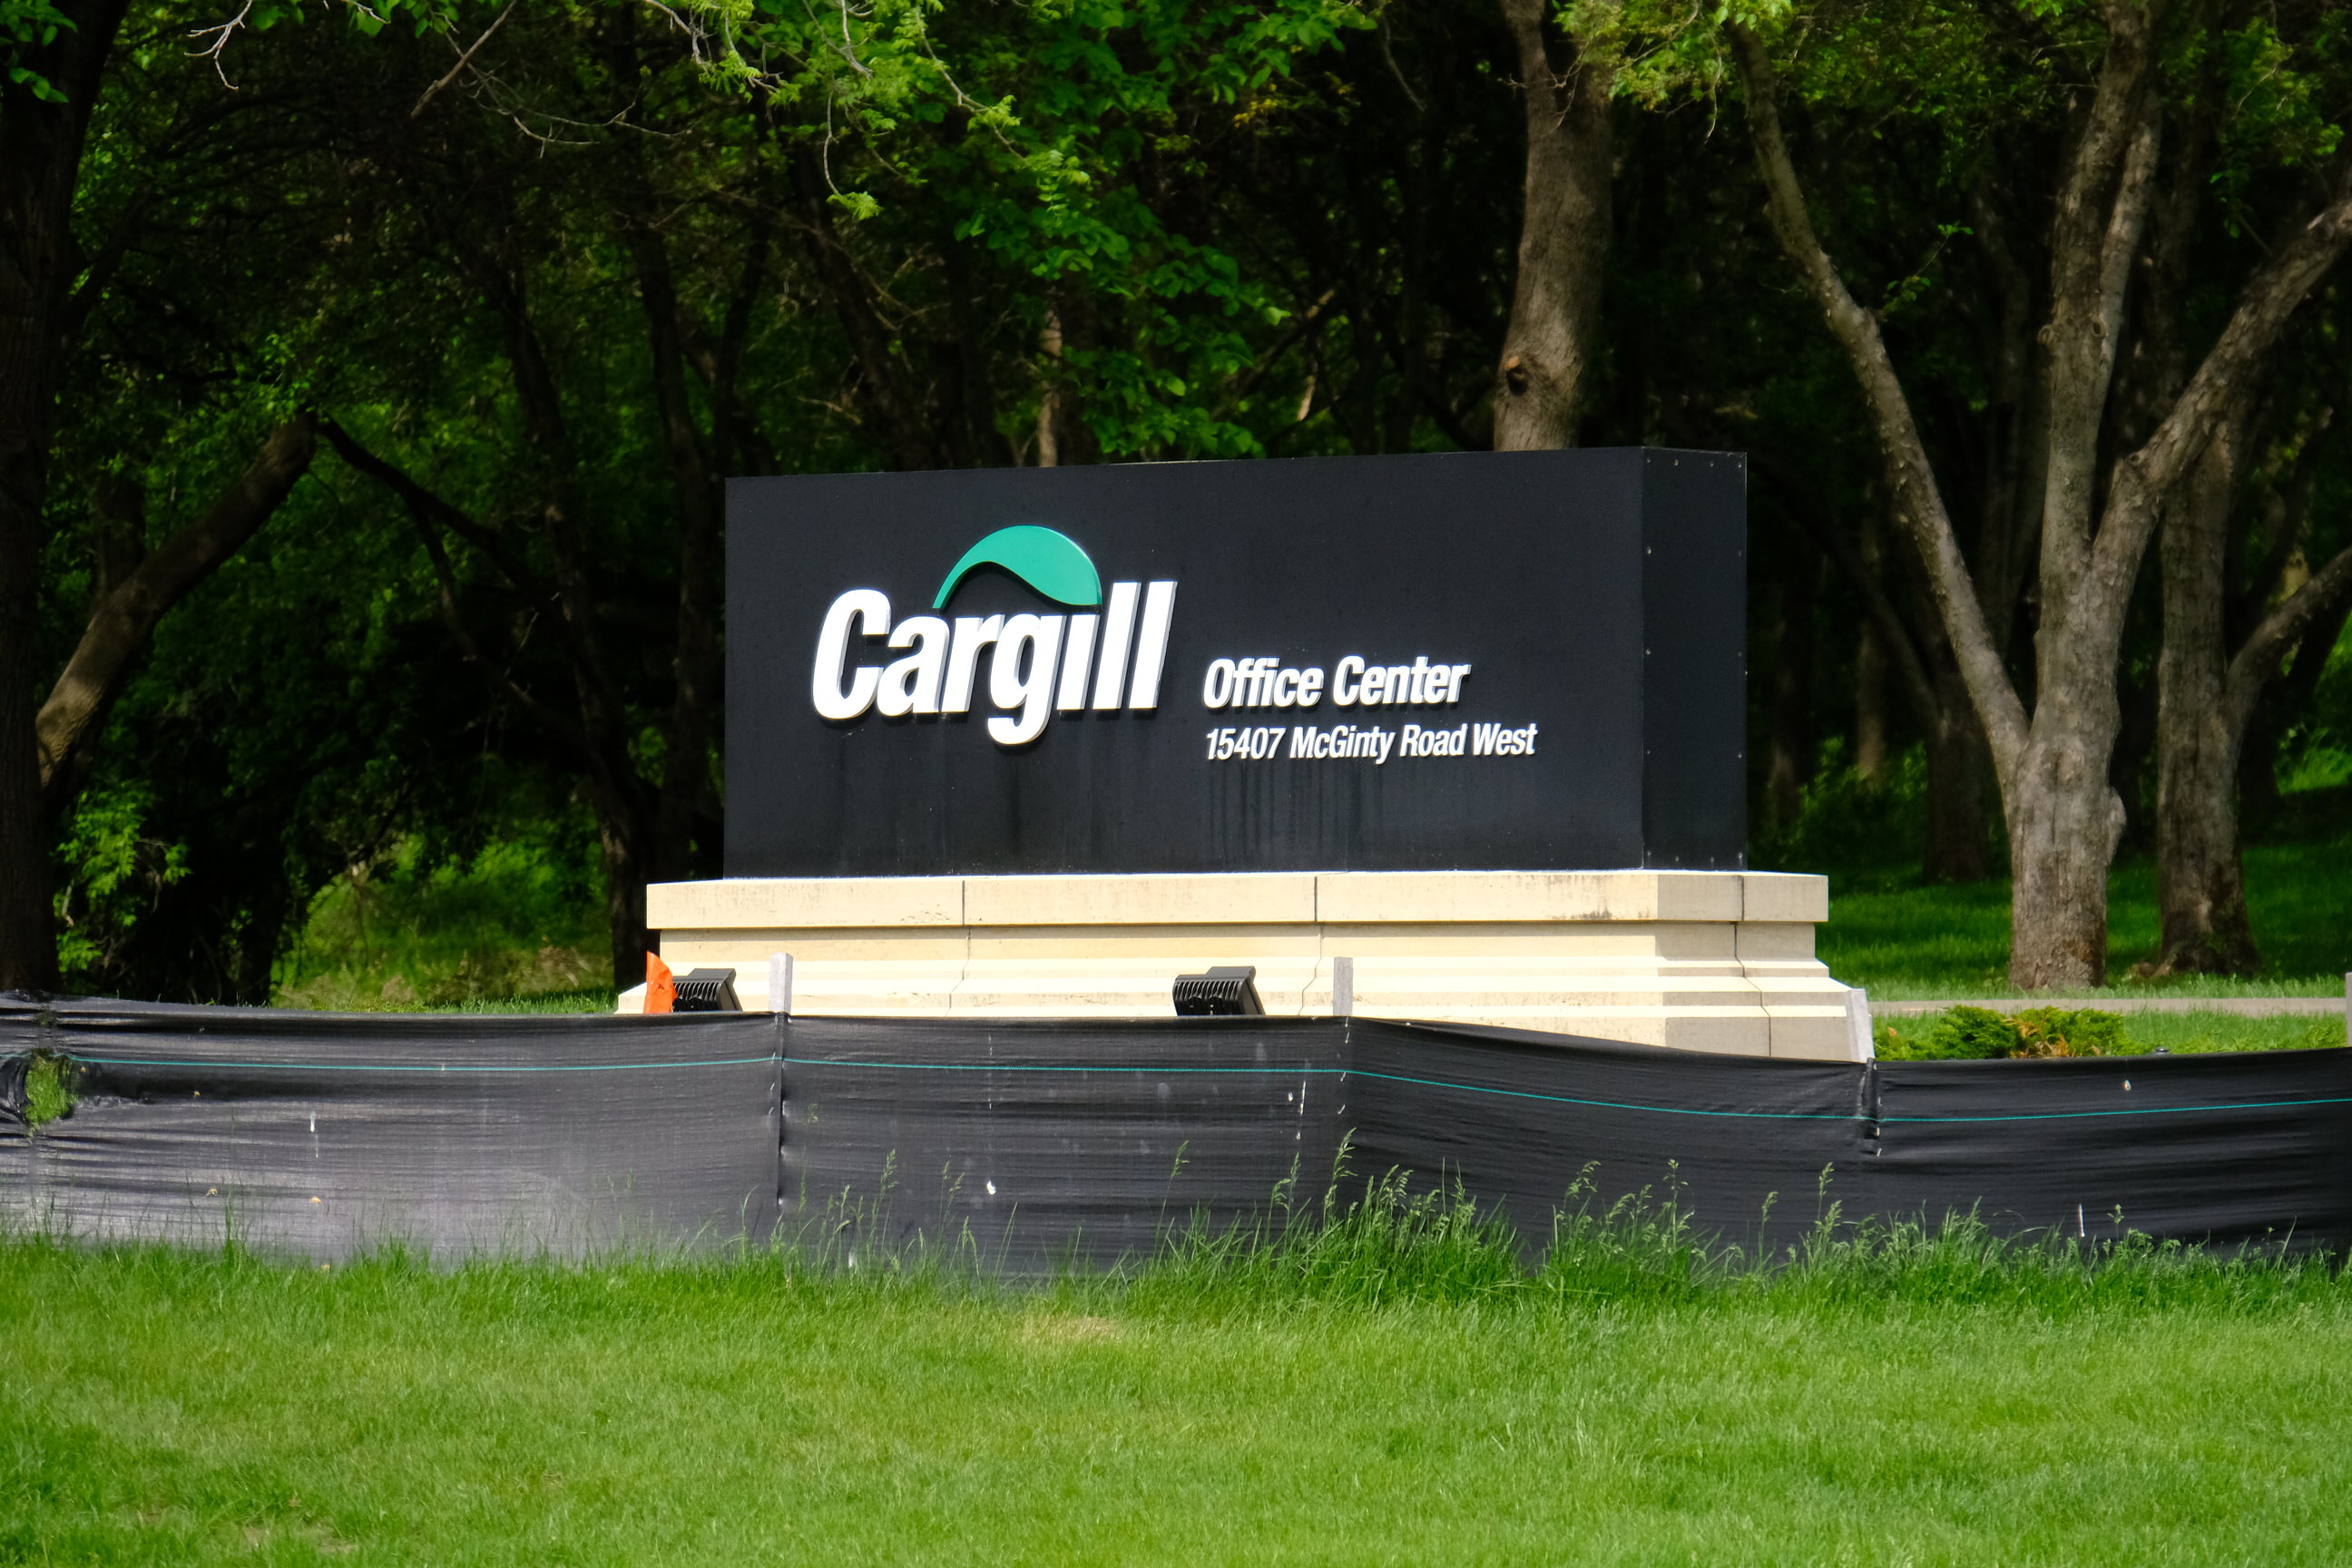 Entrance to Cargill's corporate headquarters in Wayzata, Minnesota.